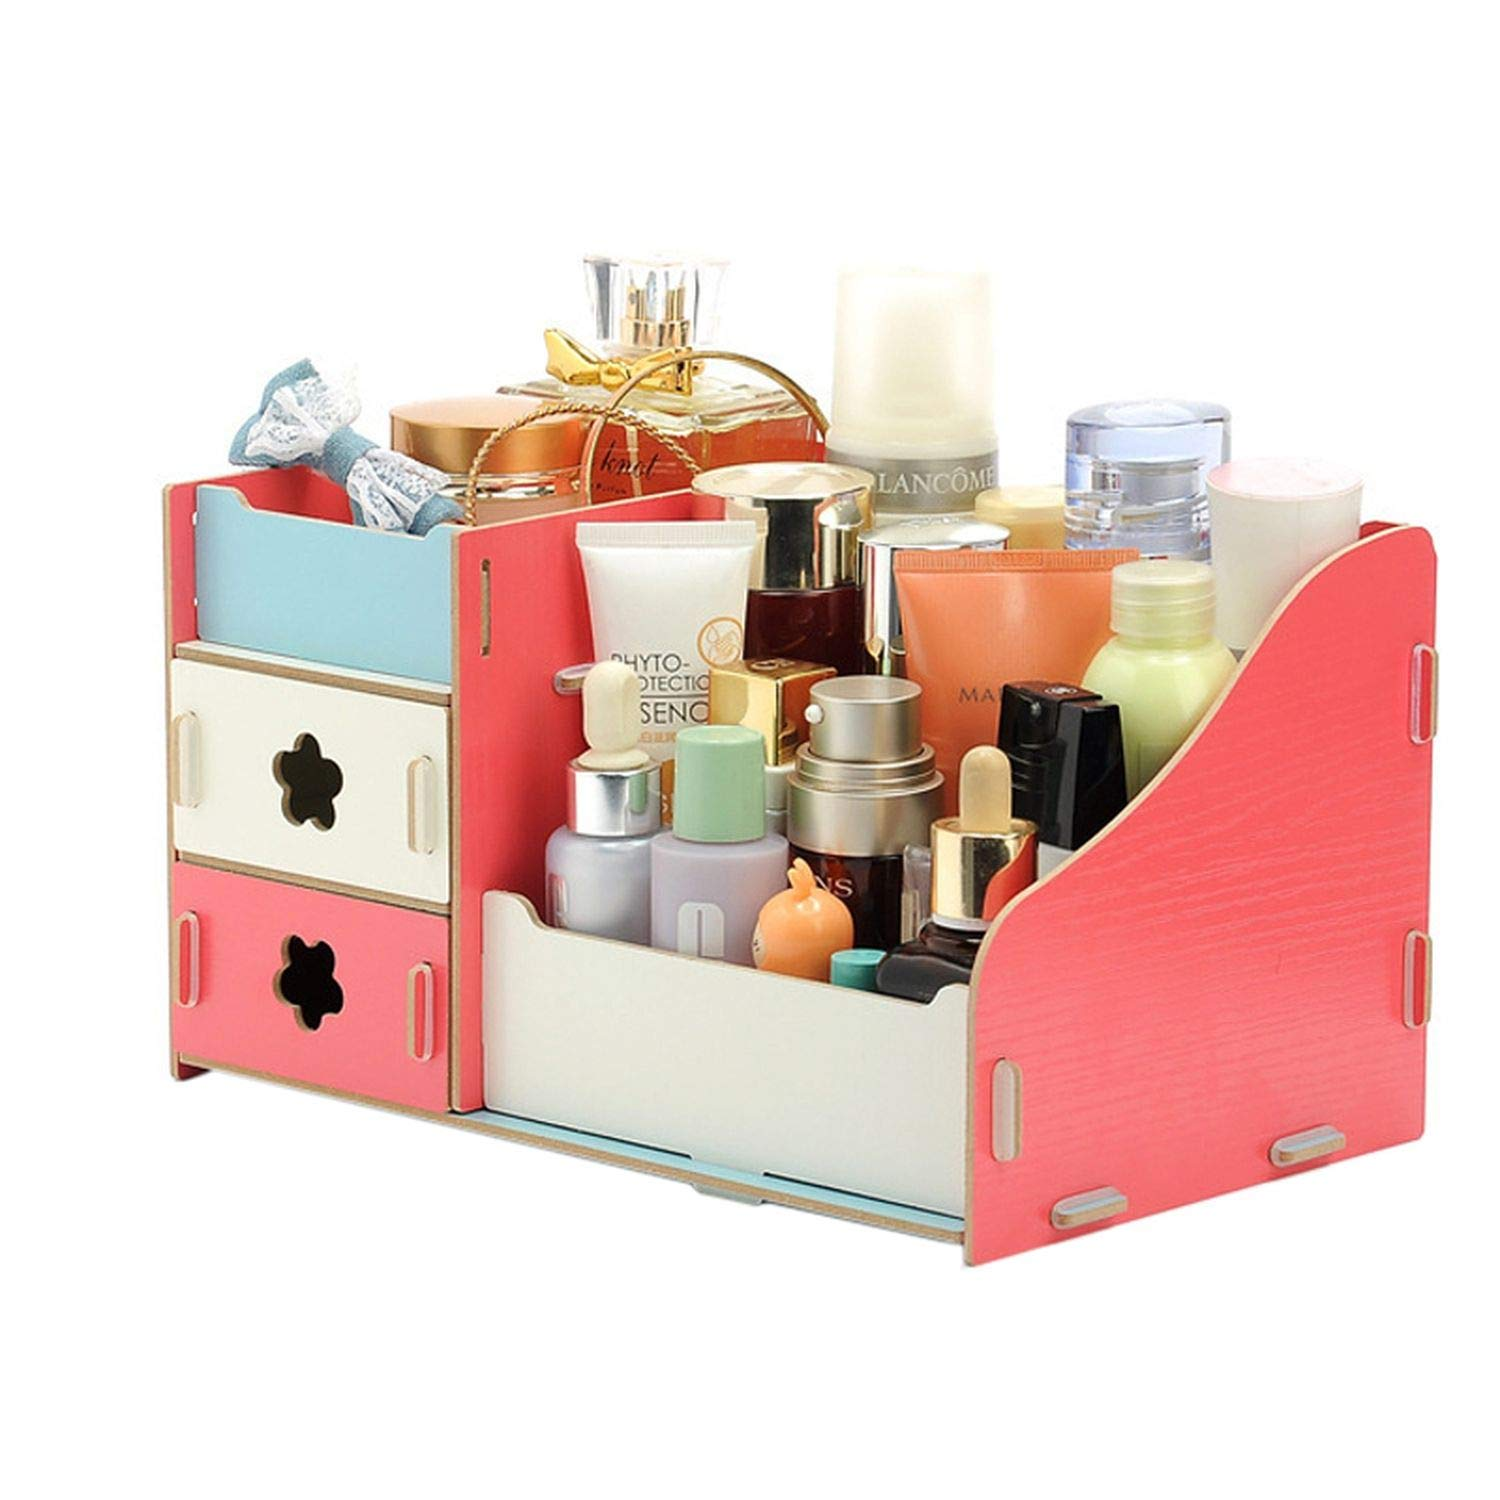 Collocation-Online Wooden Cosmetic Storage Boxes Small Drawer Jewelry Box Desktop Sundries Handmade DIY Makeup,Flower A by Collocation-Online (Image #5)